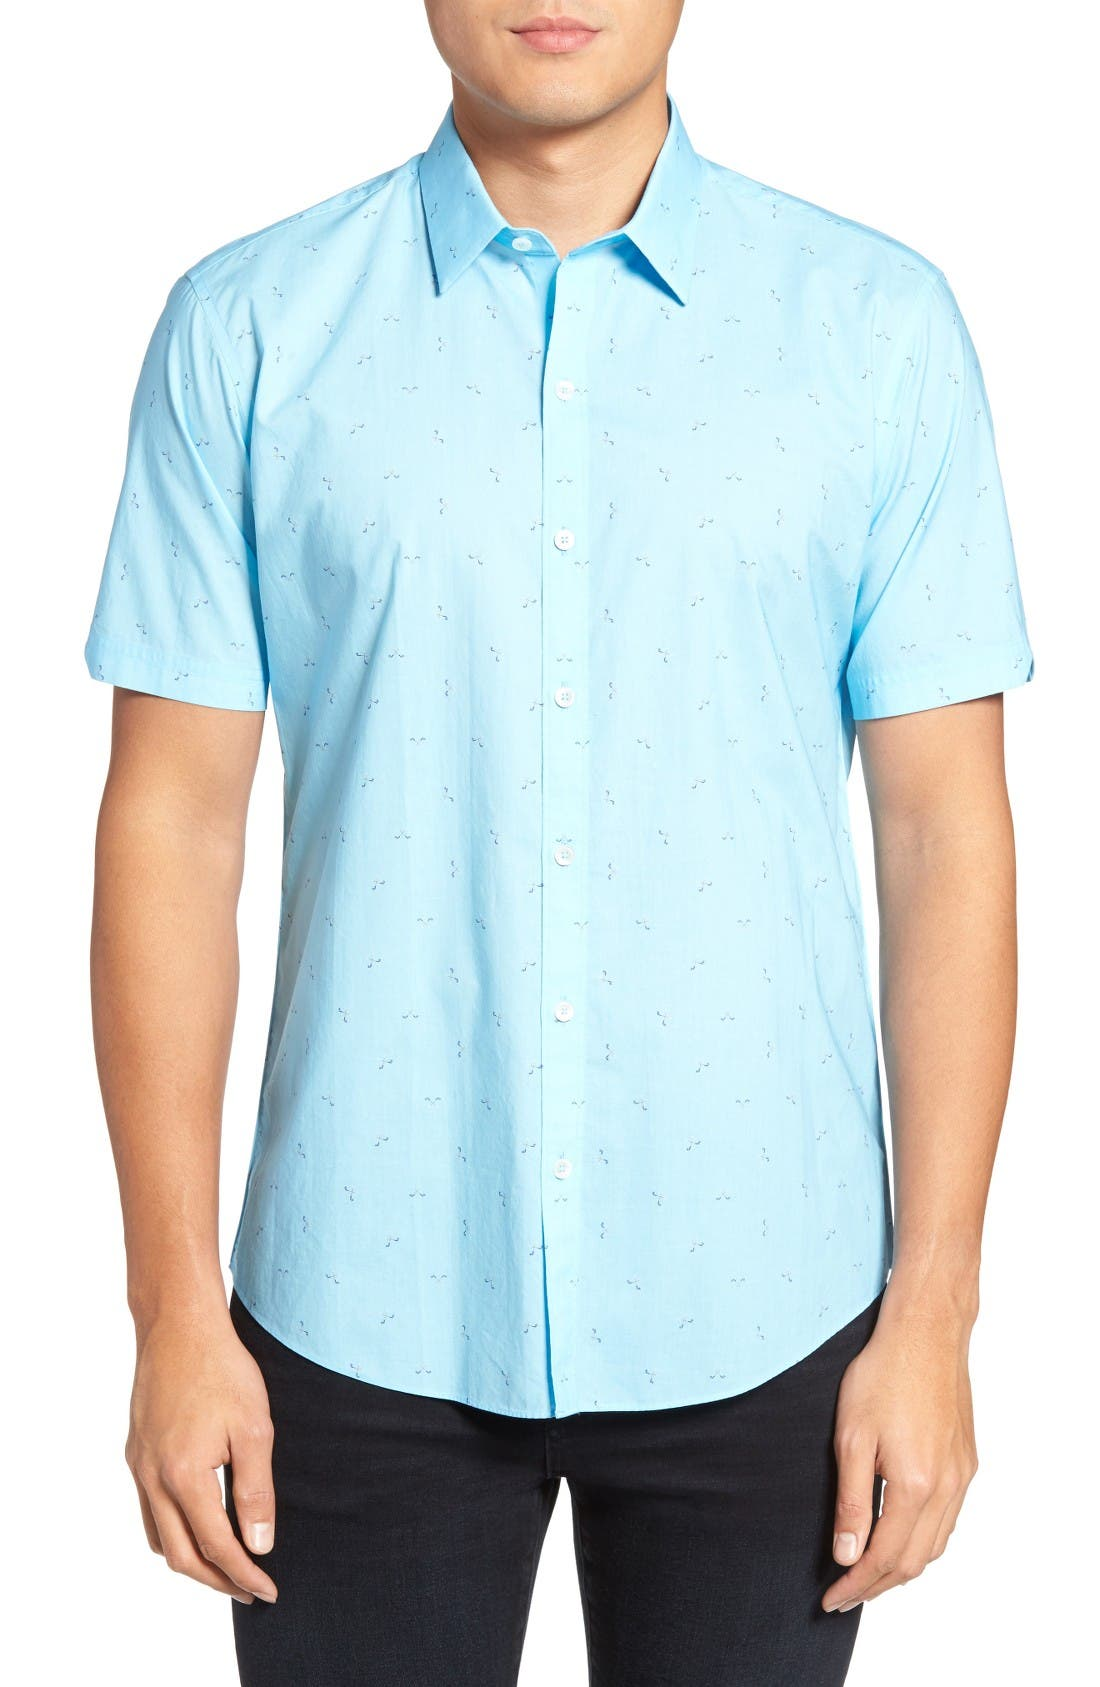 Weinman Regular Fit Print Short Sleeve Sport Shirt,                             Main thumbnail 1, color,                             Turquoise